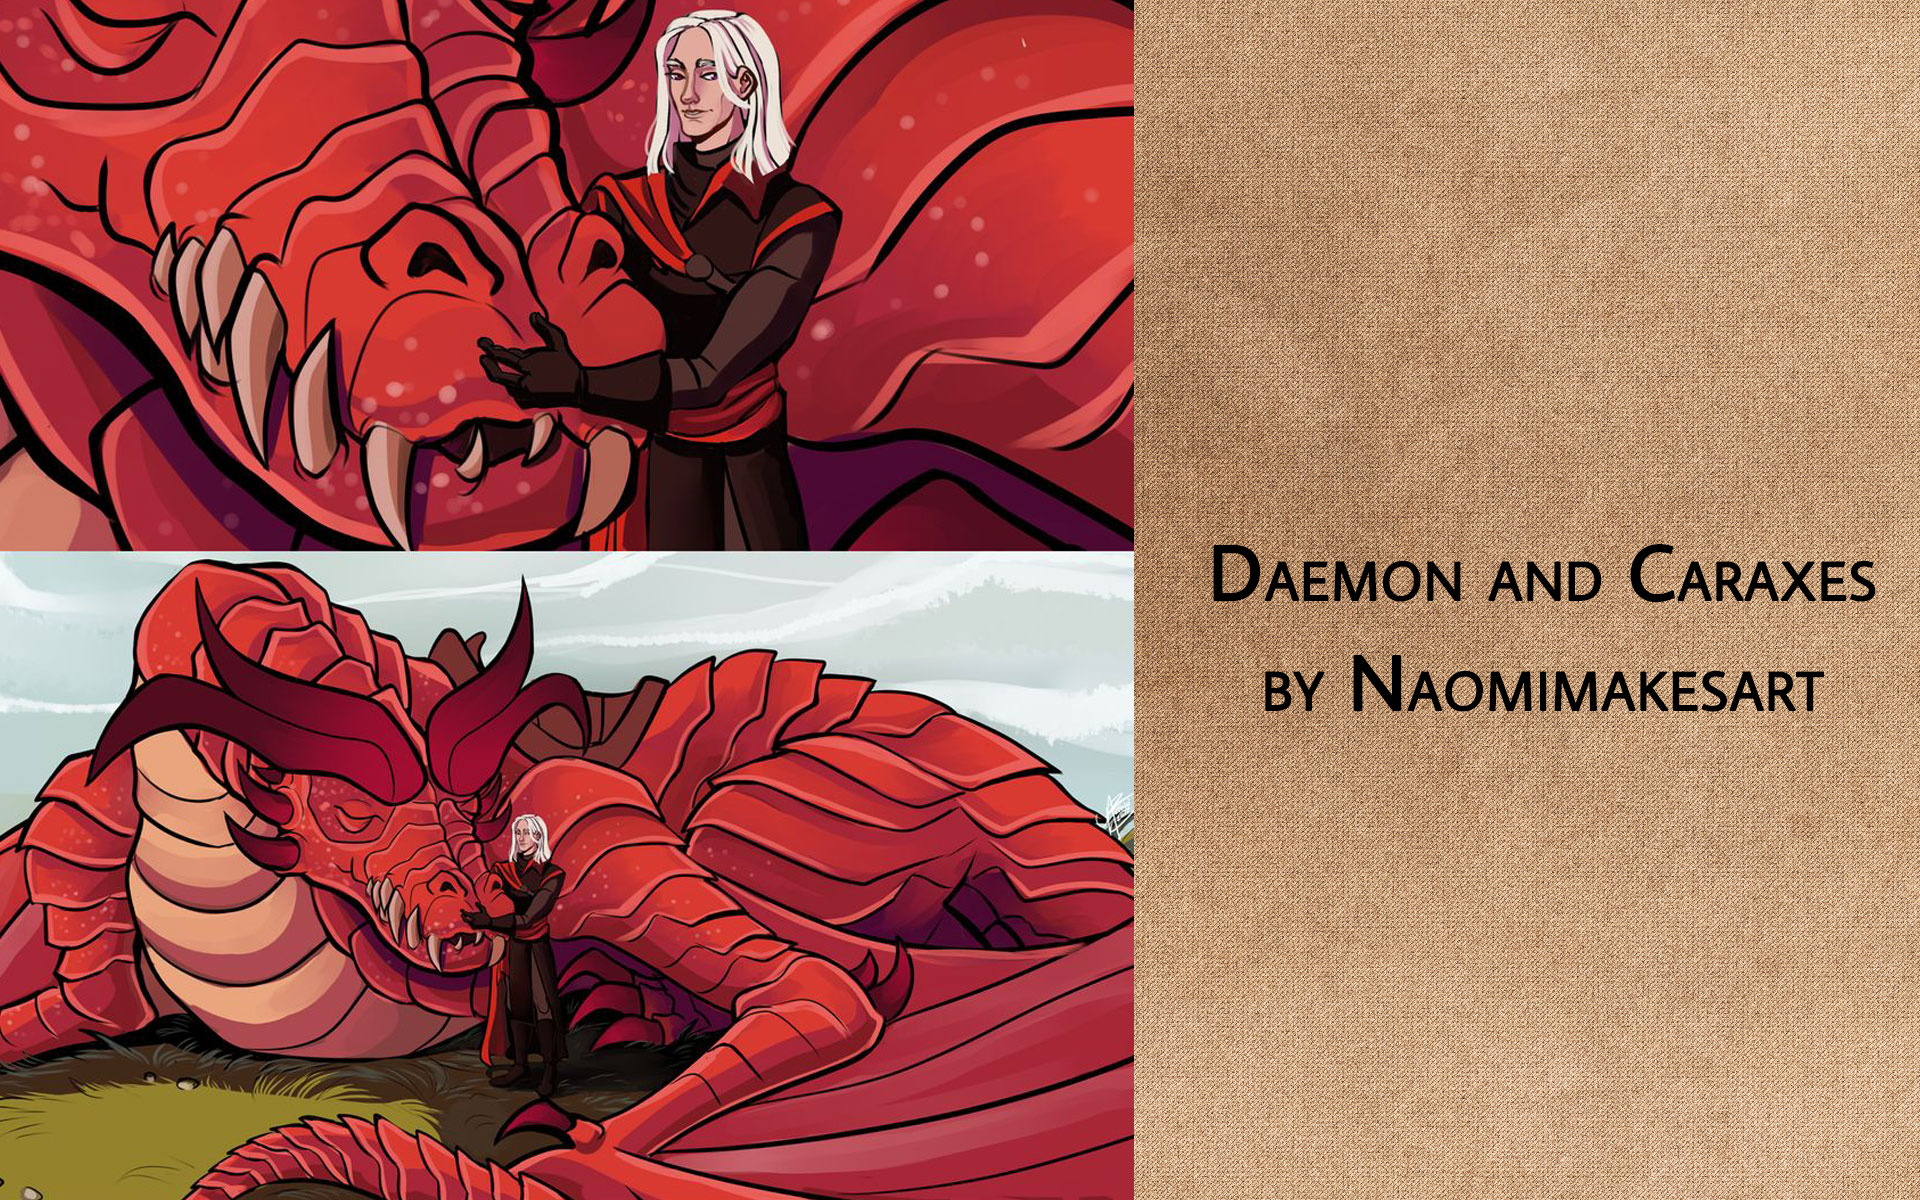 Daemon and Caraxes (naomimakesart)